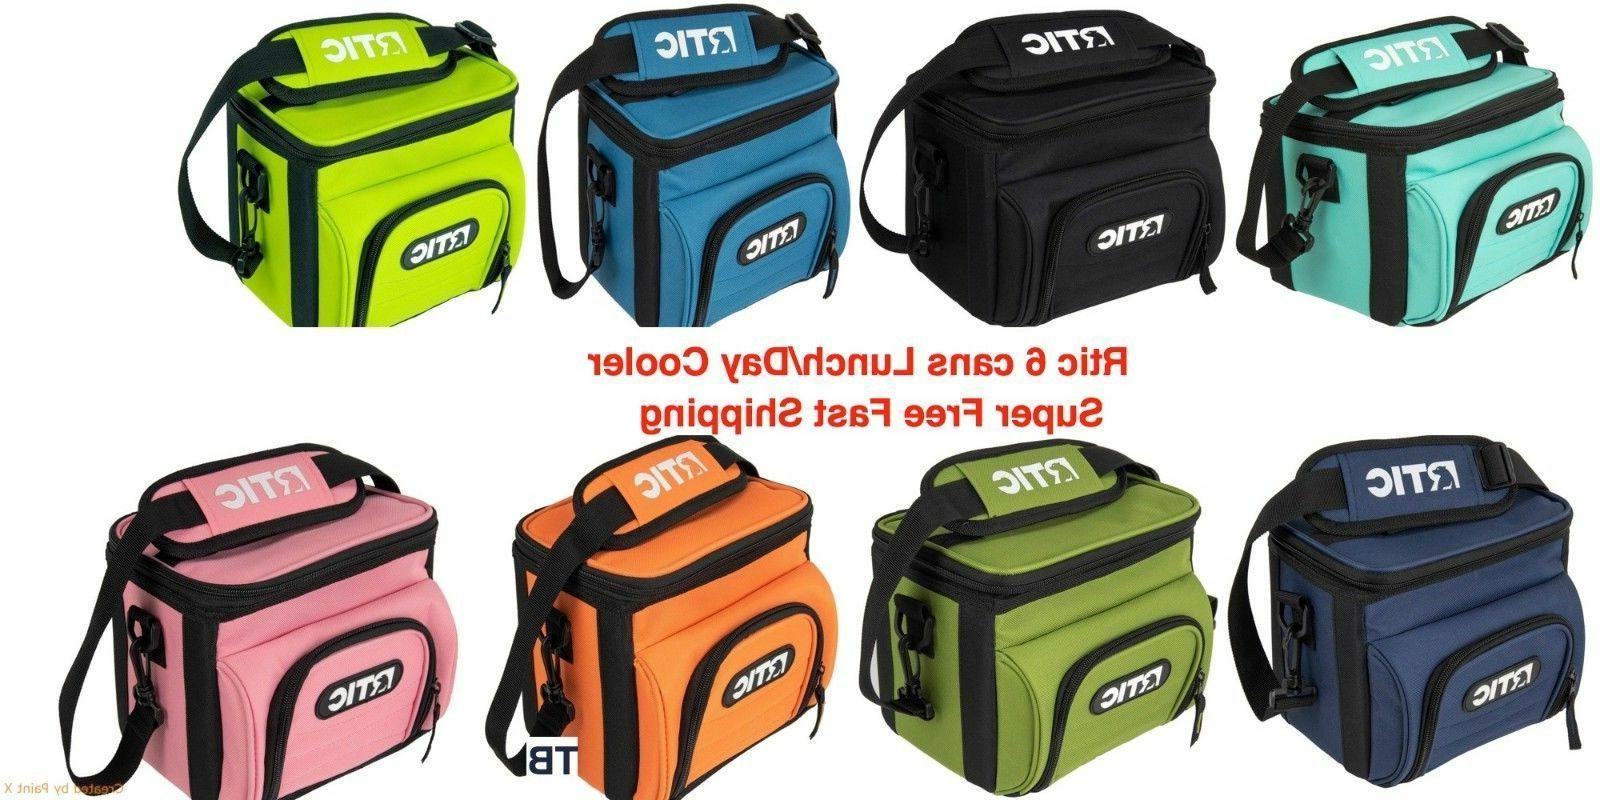 rtic 6 8 28 can day cooler